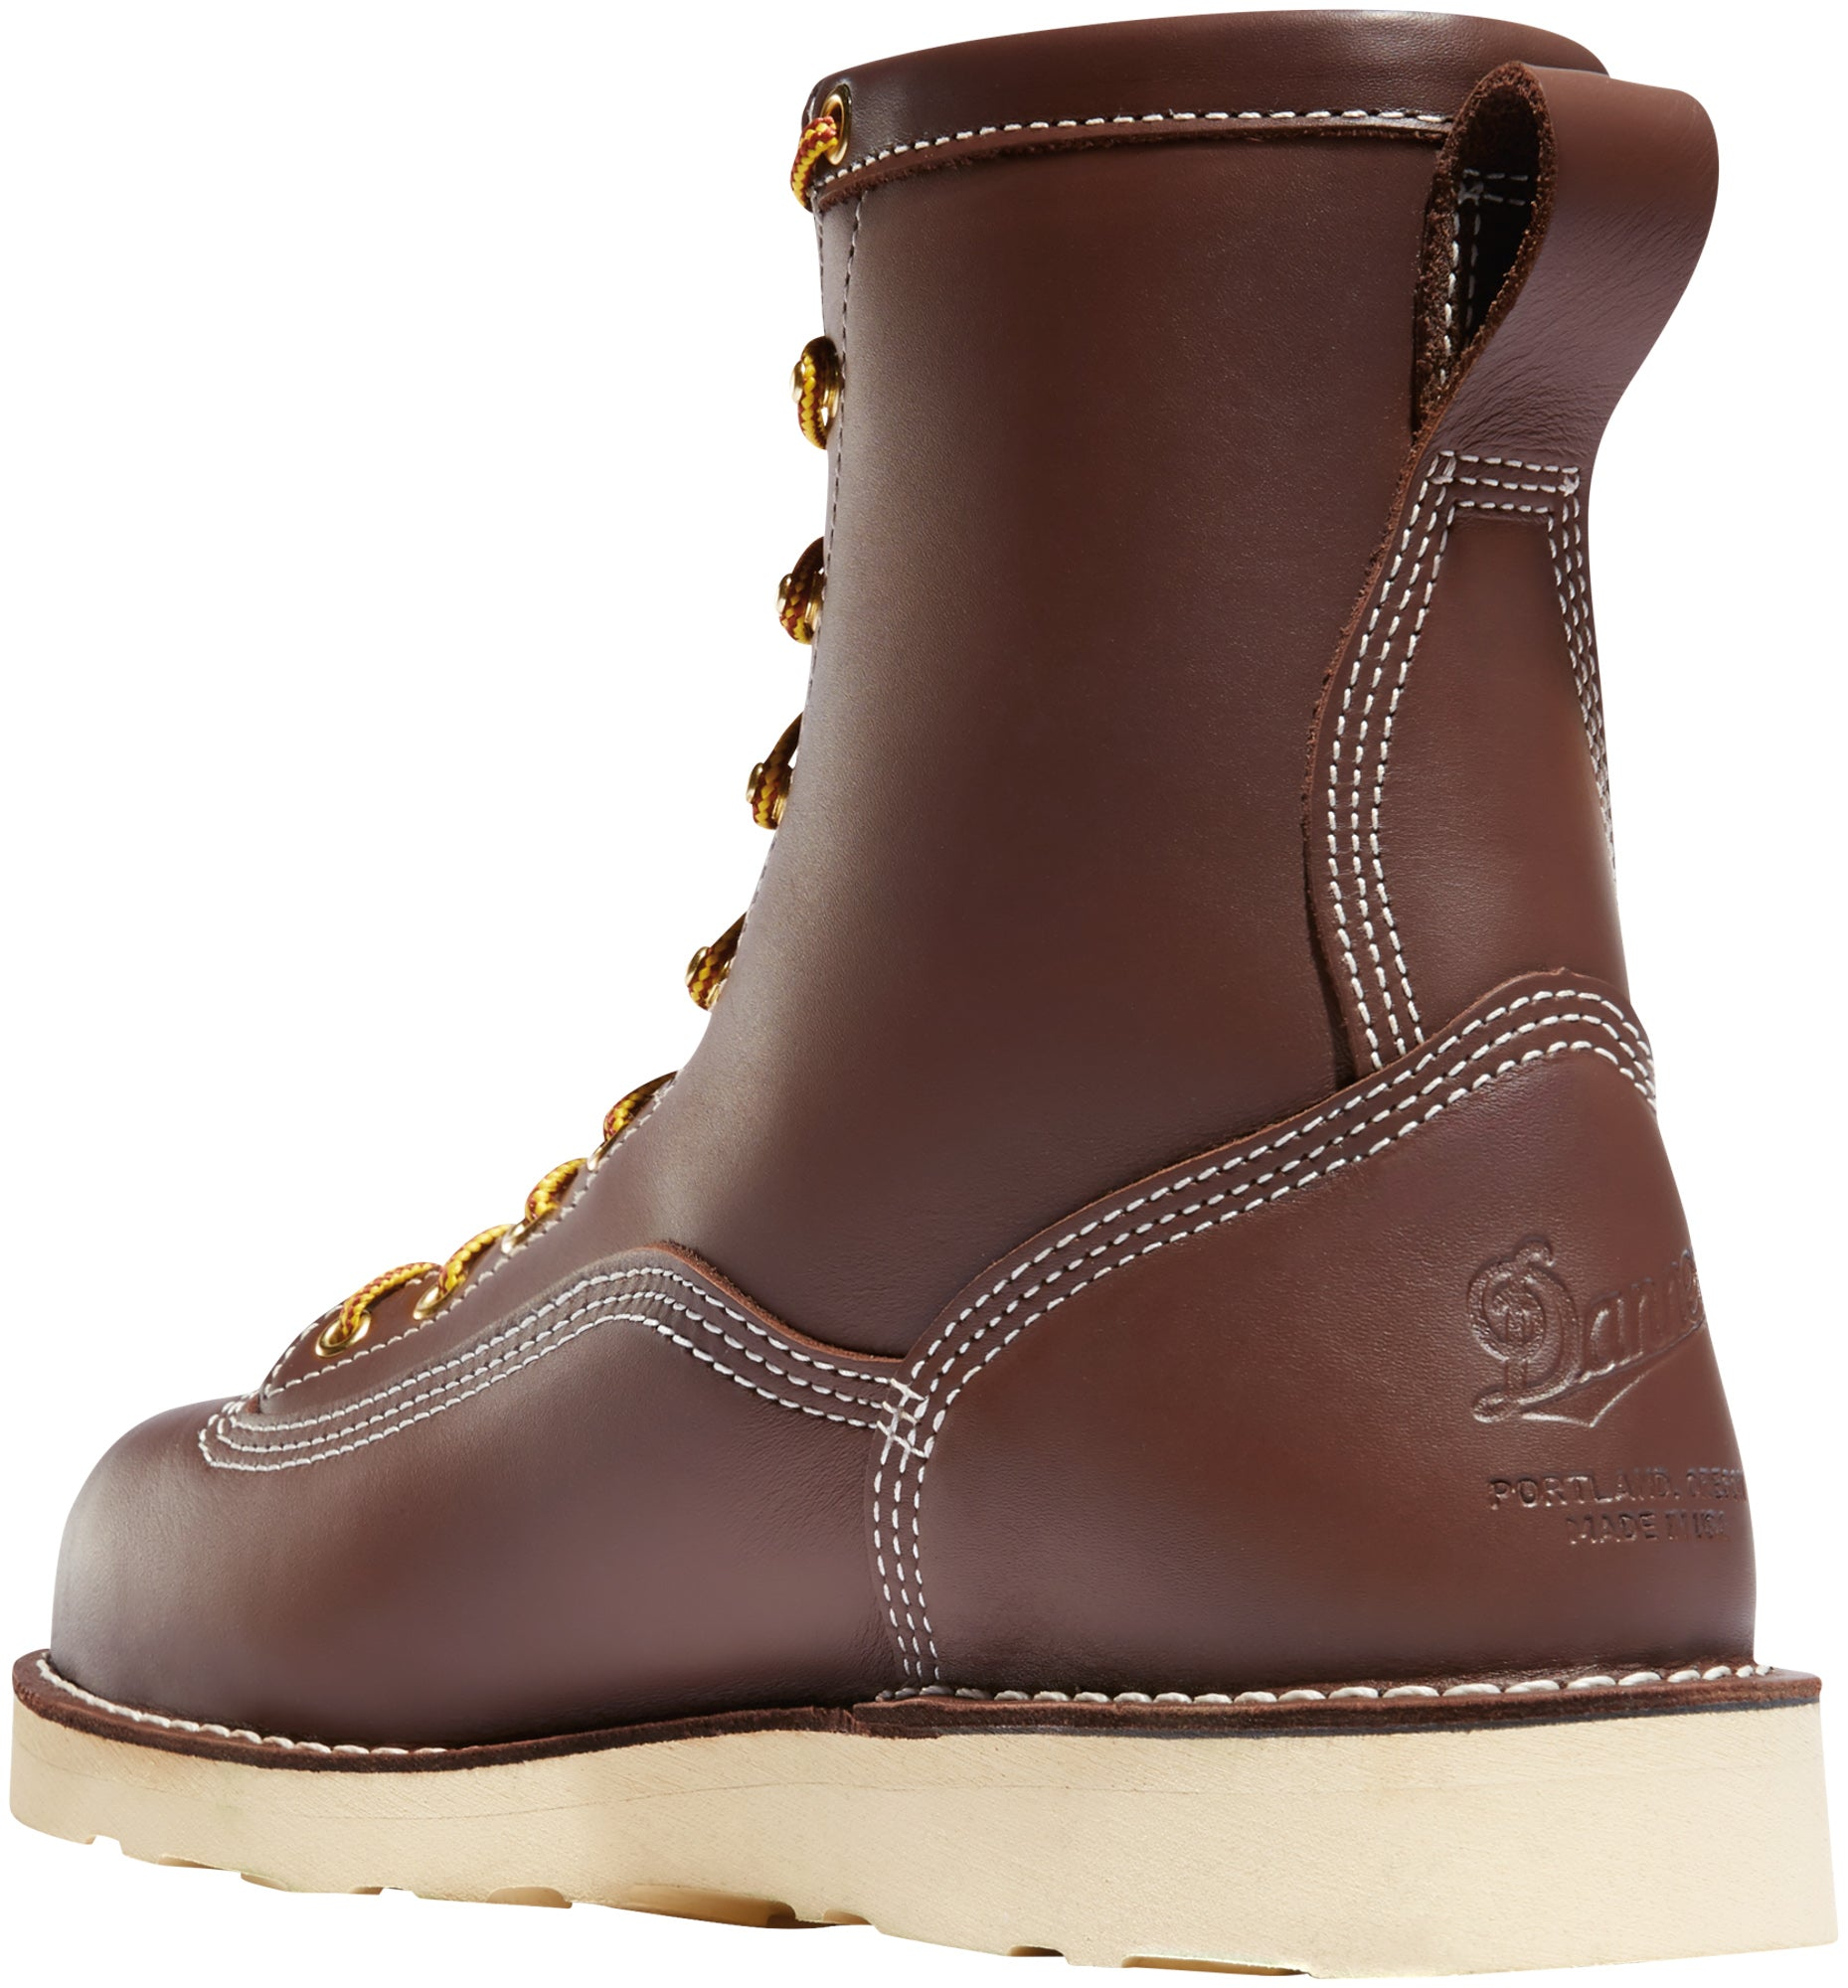 c19c0d10598 Danner Power Foreman Mens Brown Leather 8in GTX NMT Work Boots – The ...